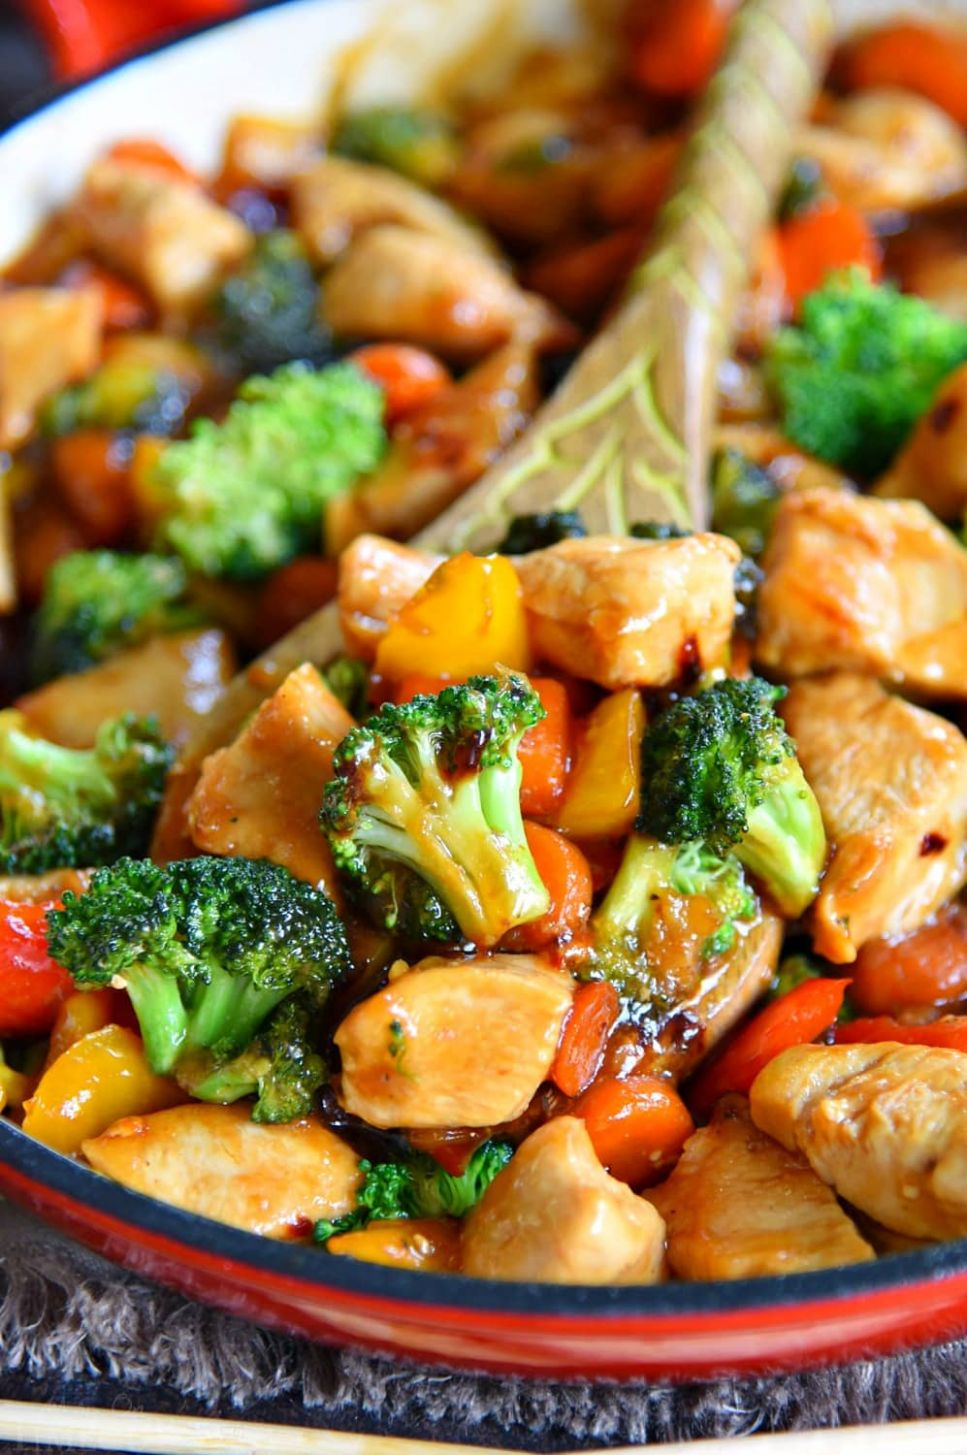 Chicken Stir Fry Recipe - Simple Recipes With Chicken